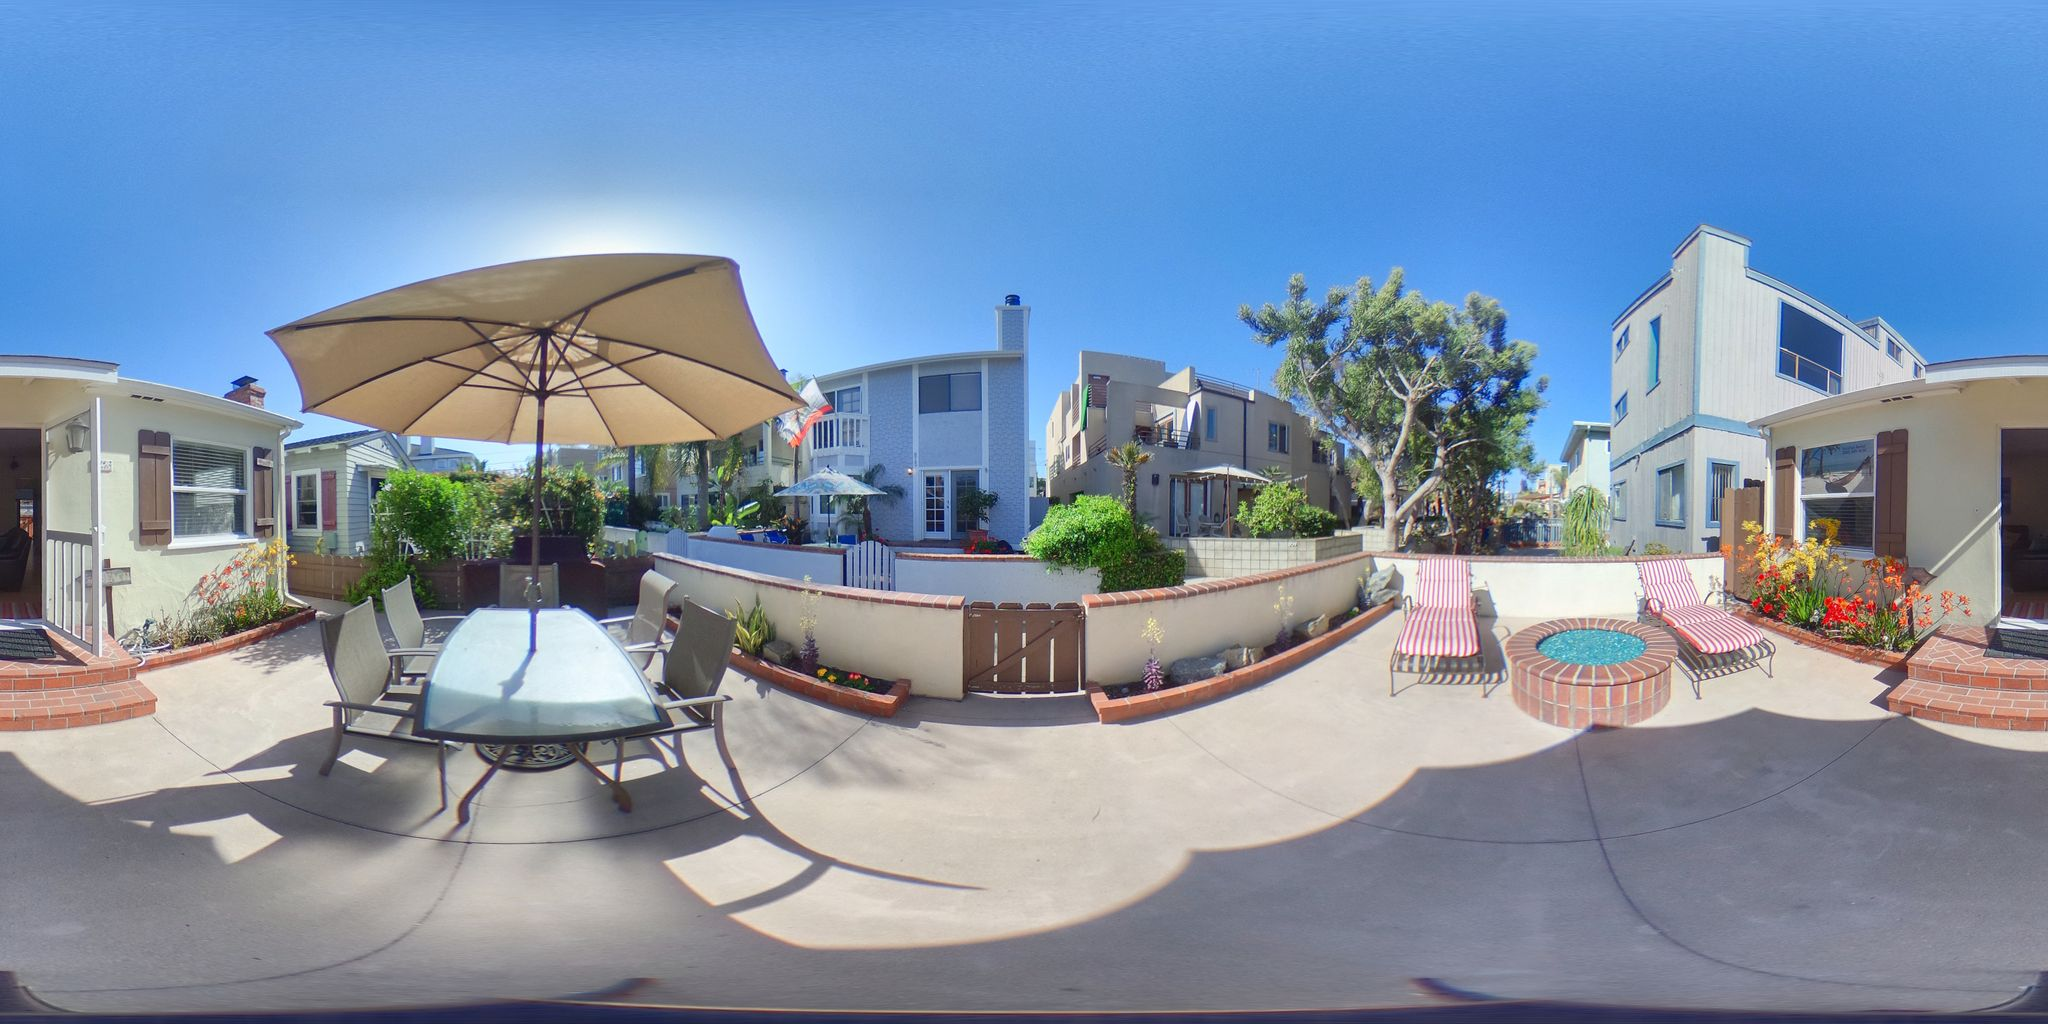 Get an immersive, 360-degree look at the layout and features of this property.